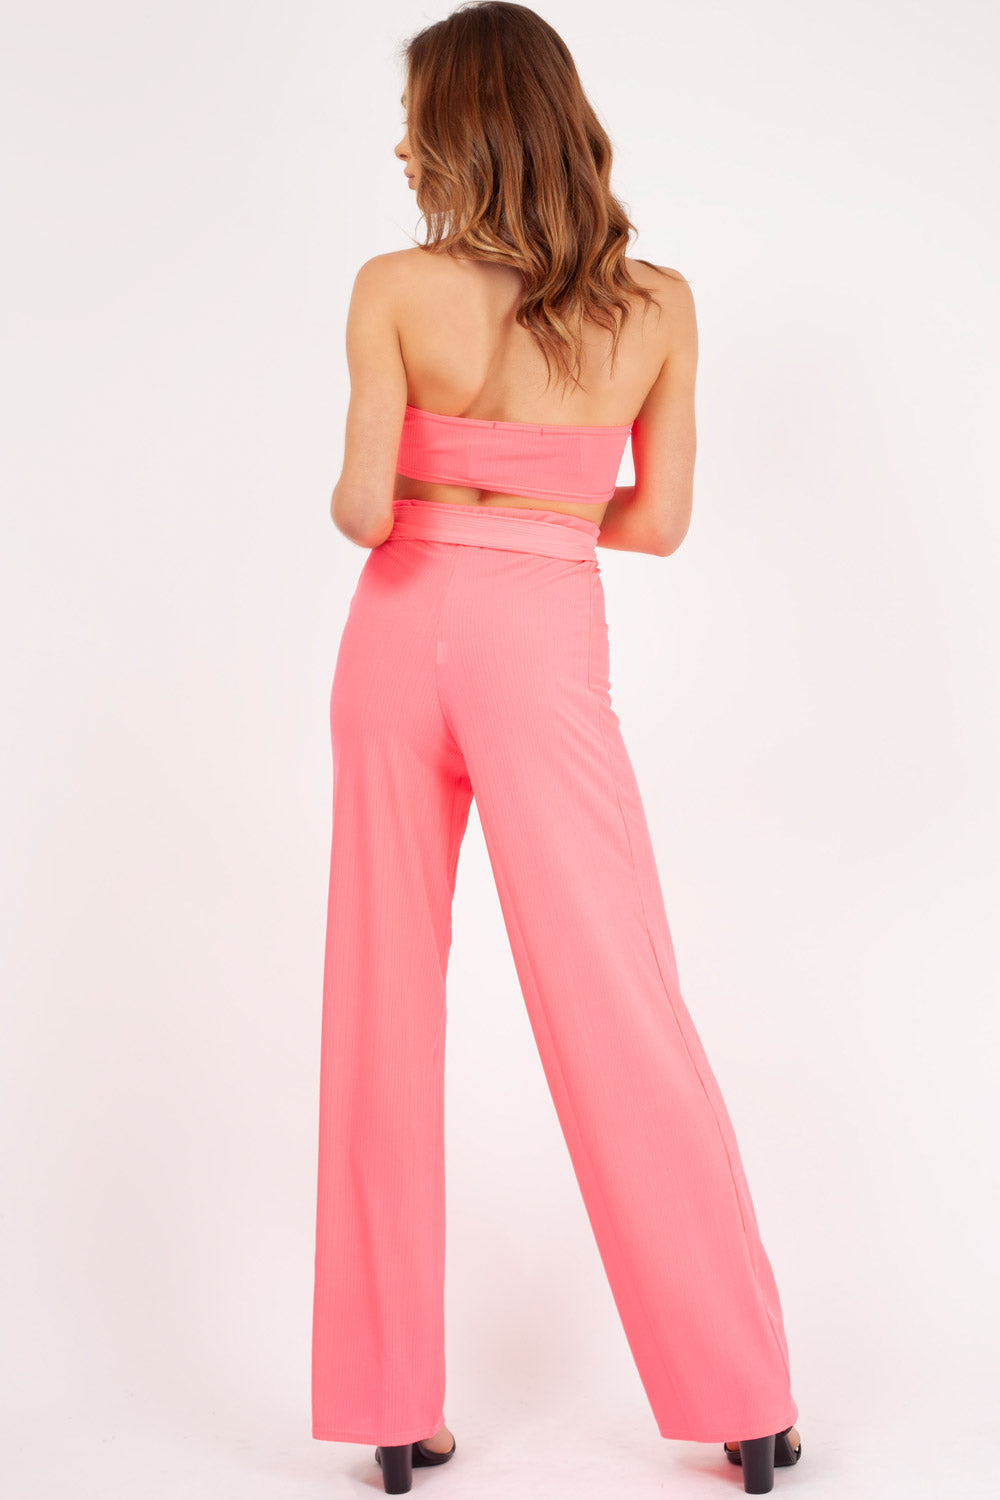 trousers and crop top set neon pink styledup fashion